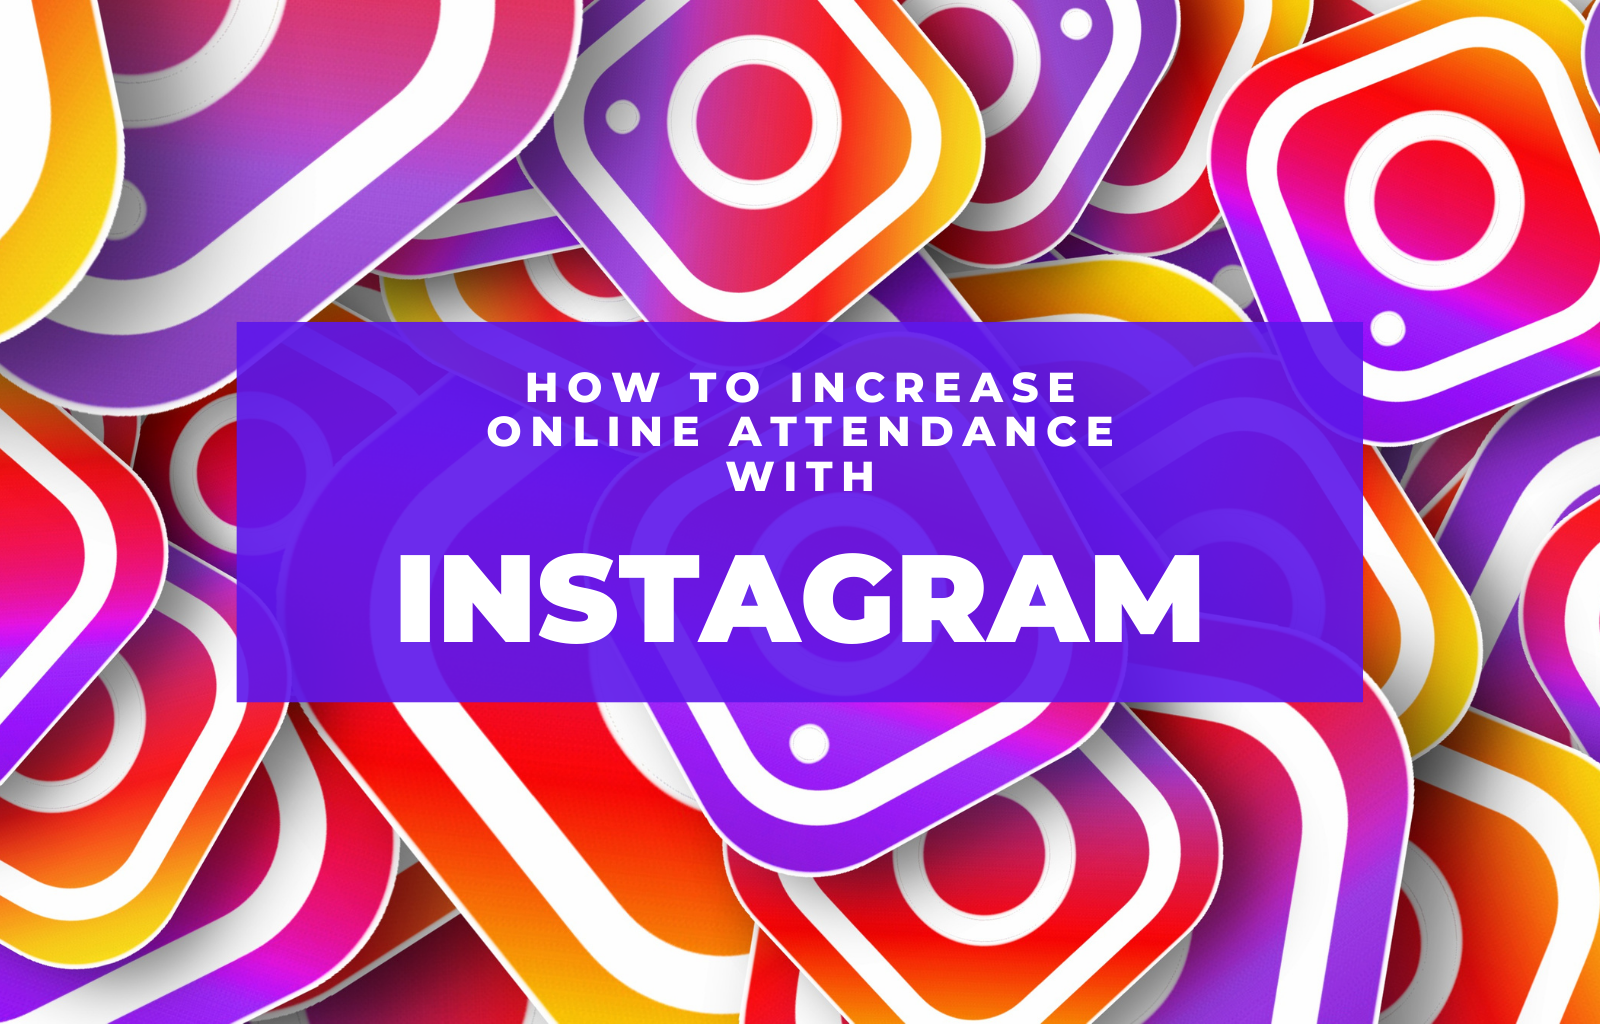 """Title image: """"How to Increase Online Attendance with Instagram"""""""